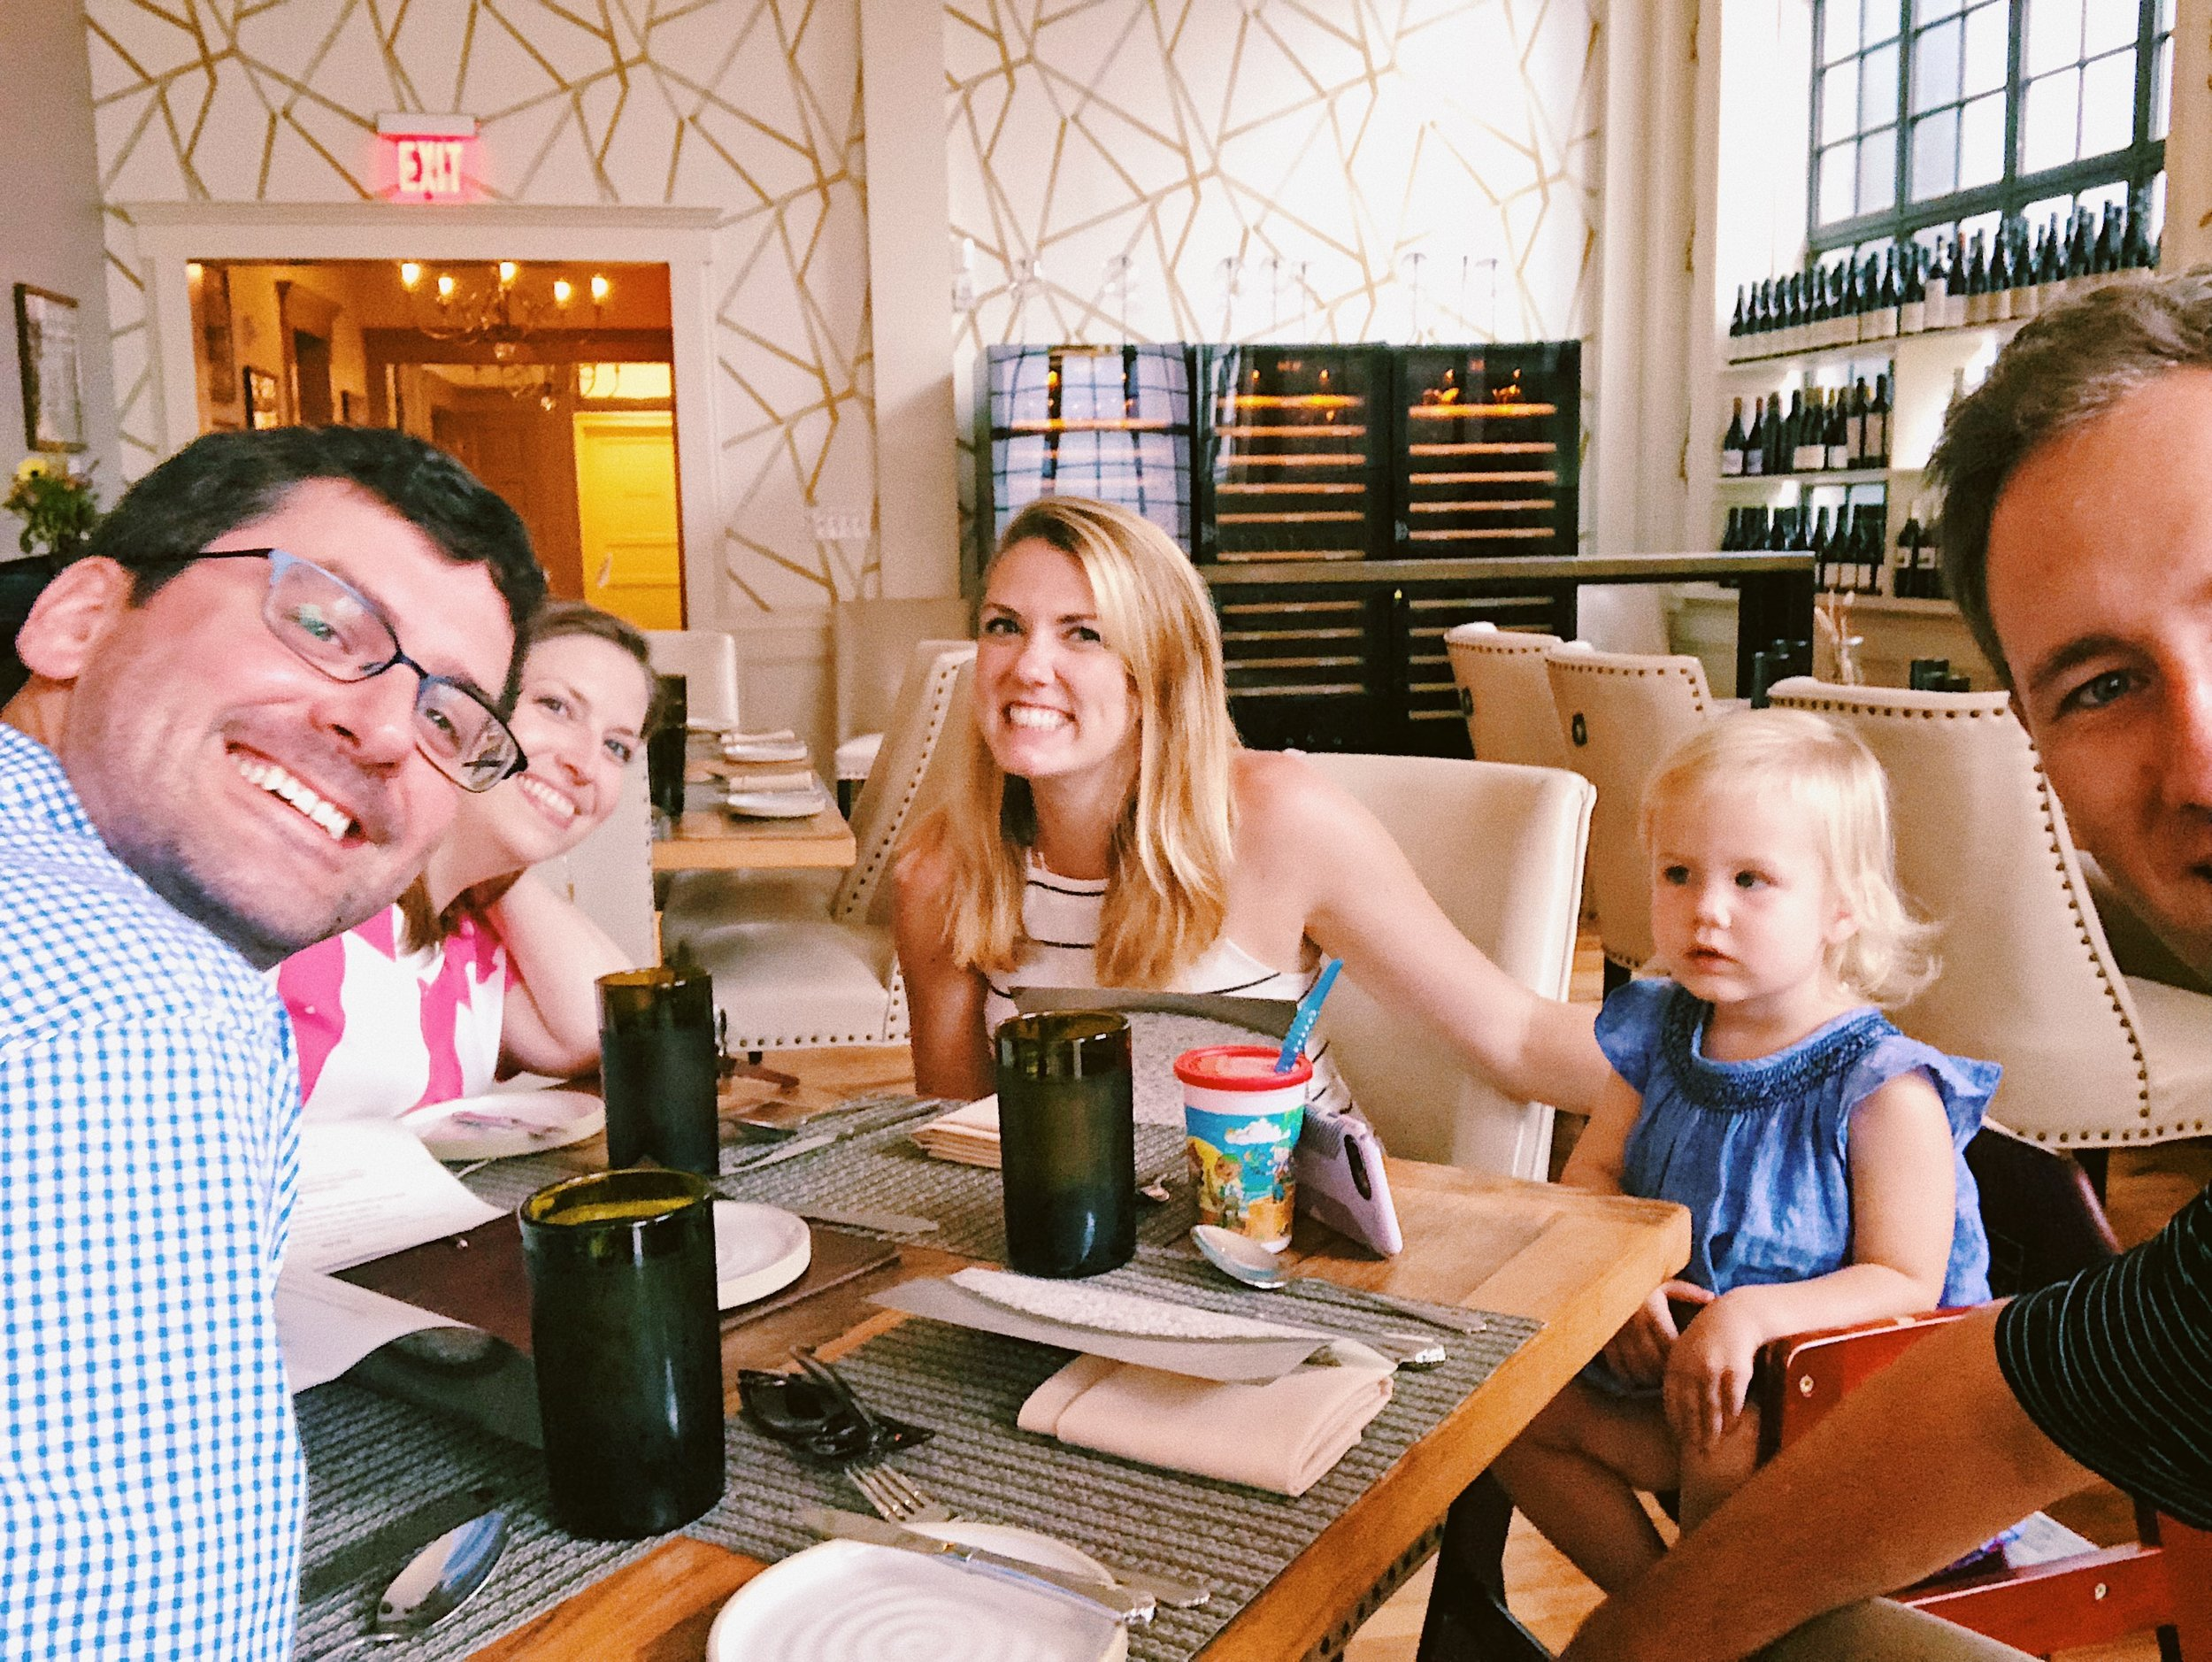 Dinner at Husk, Savannah Georgia